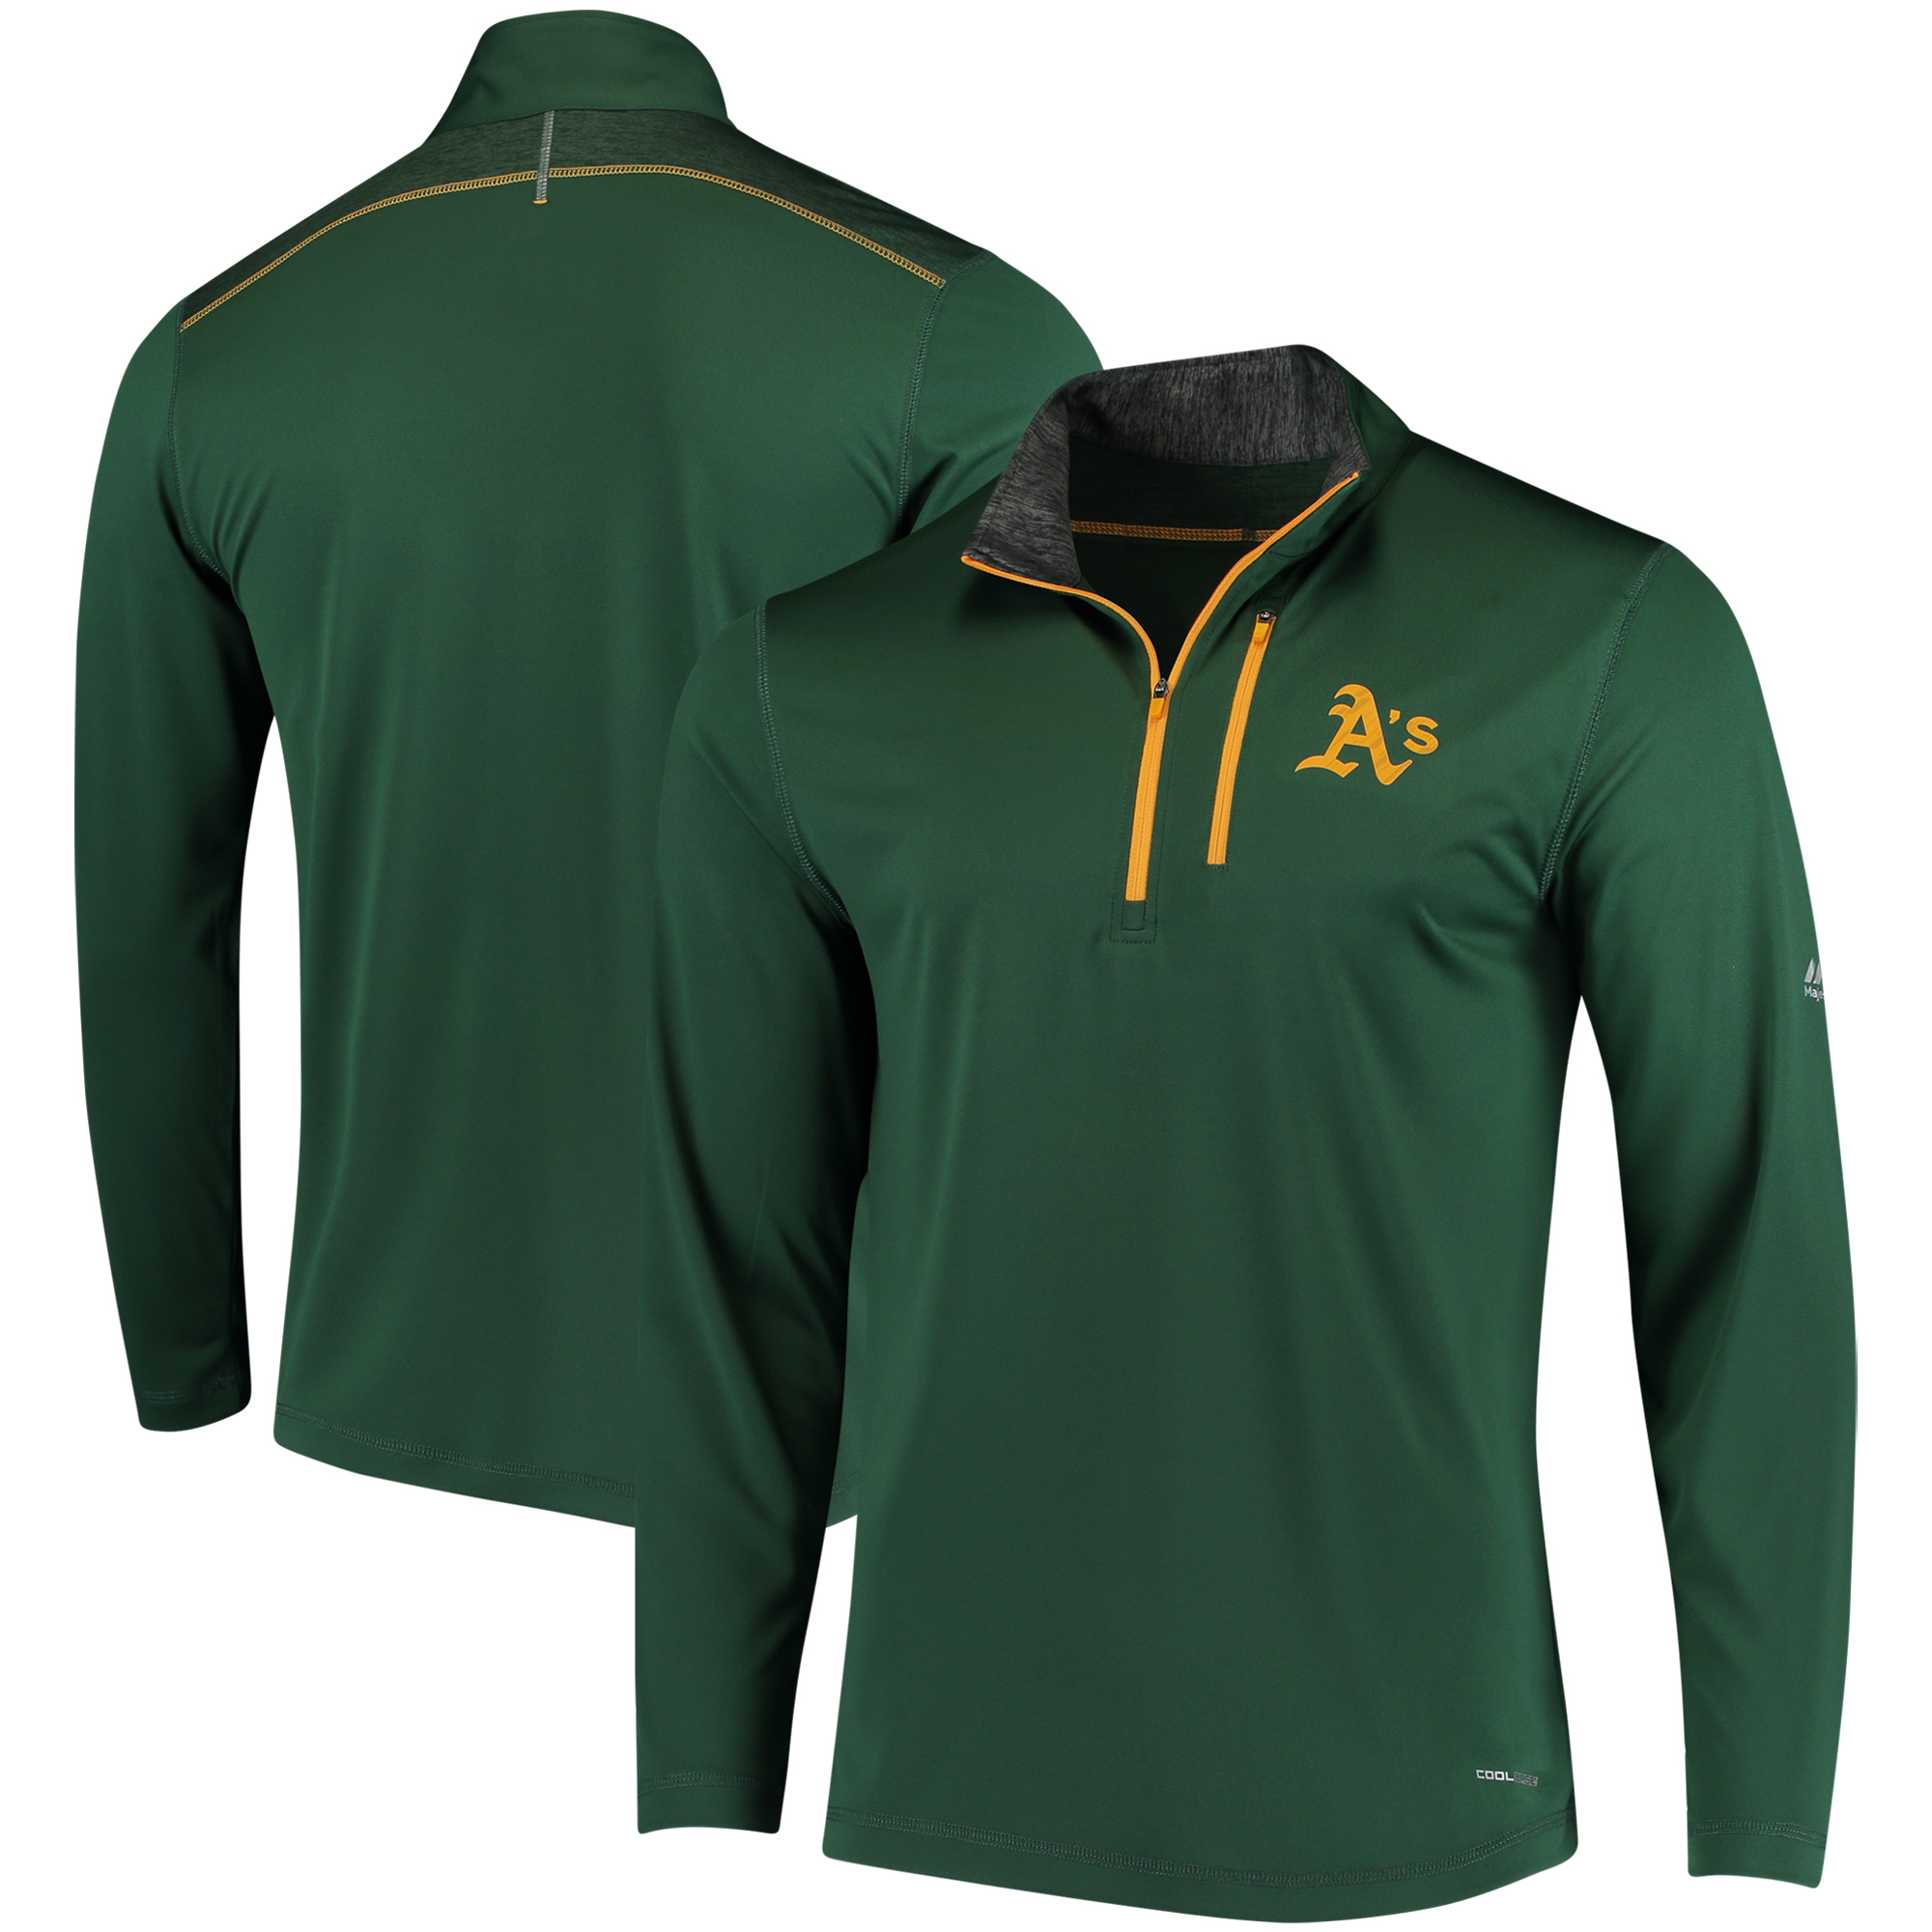 Oakland Athletics Majestic Half-Zip Pullover Top - Green